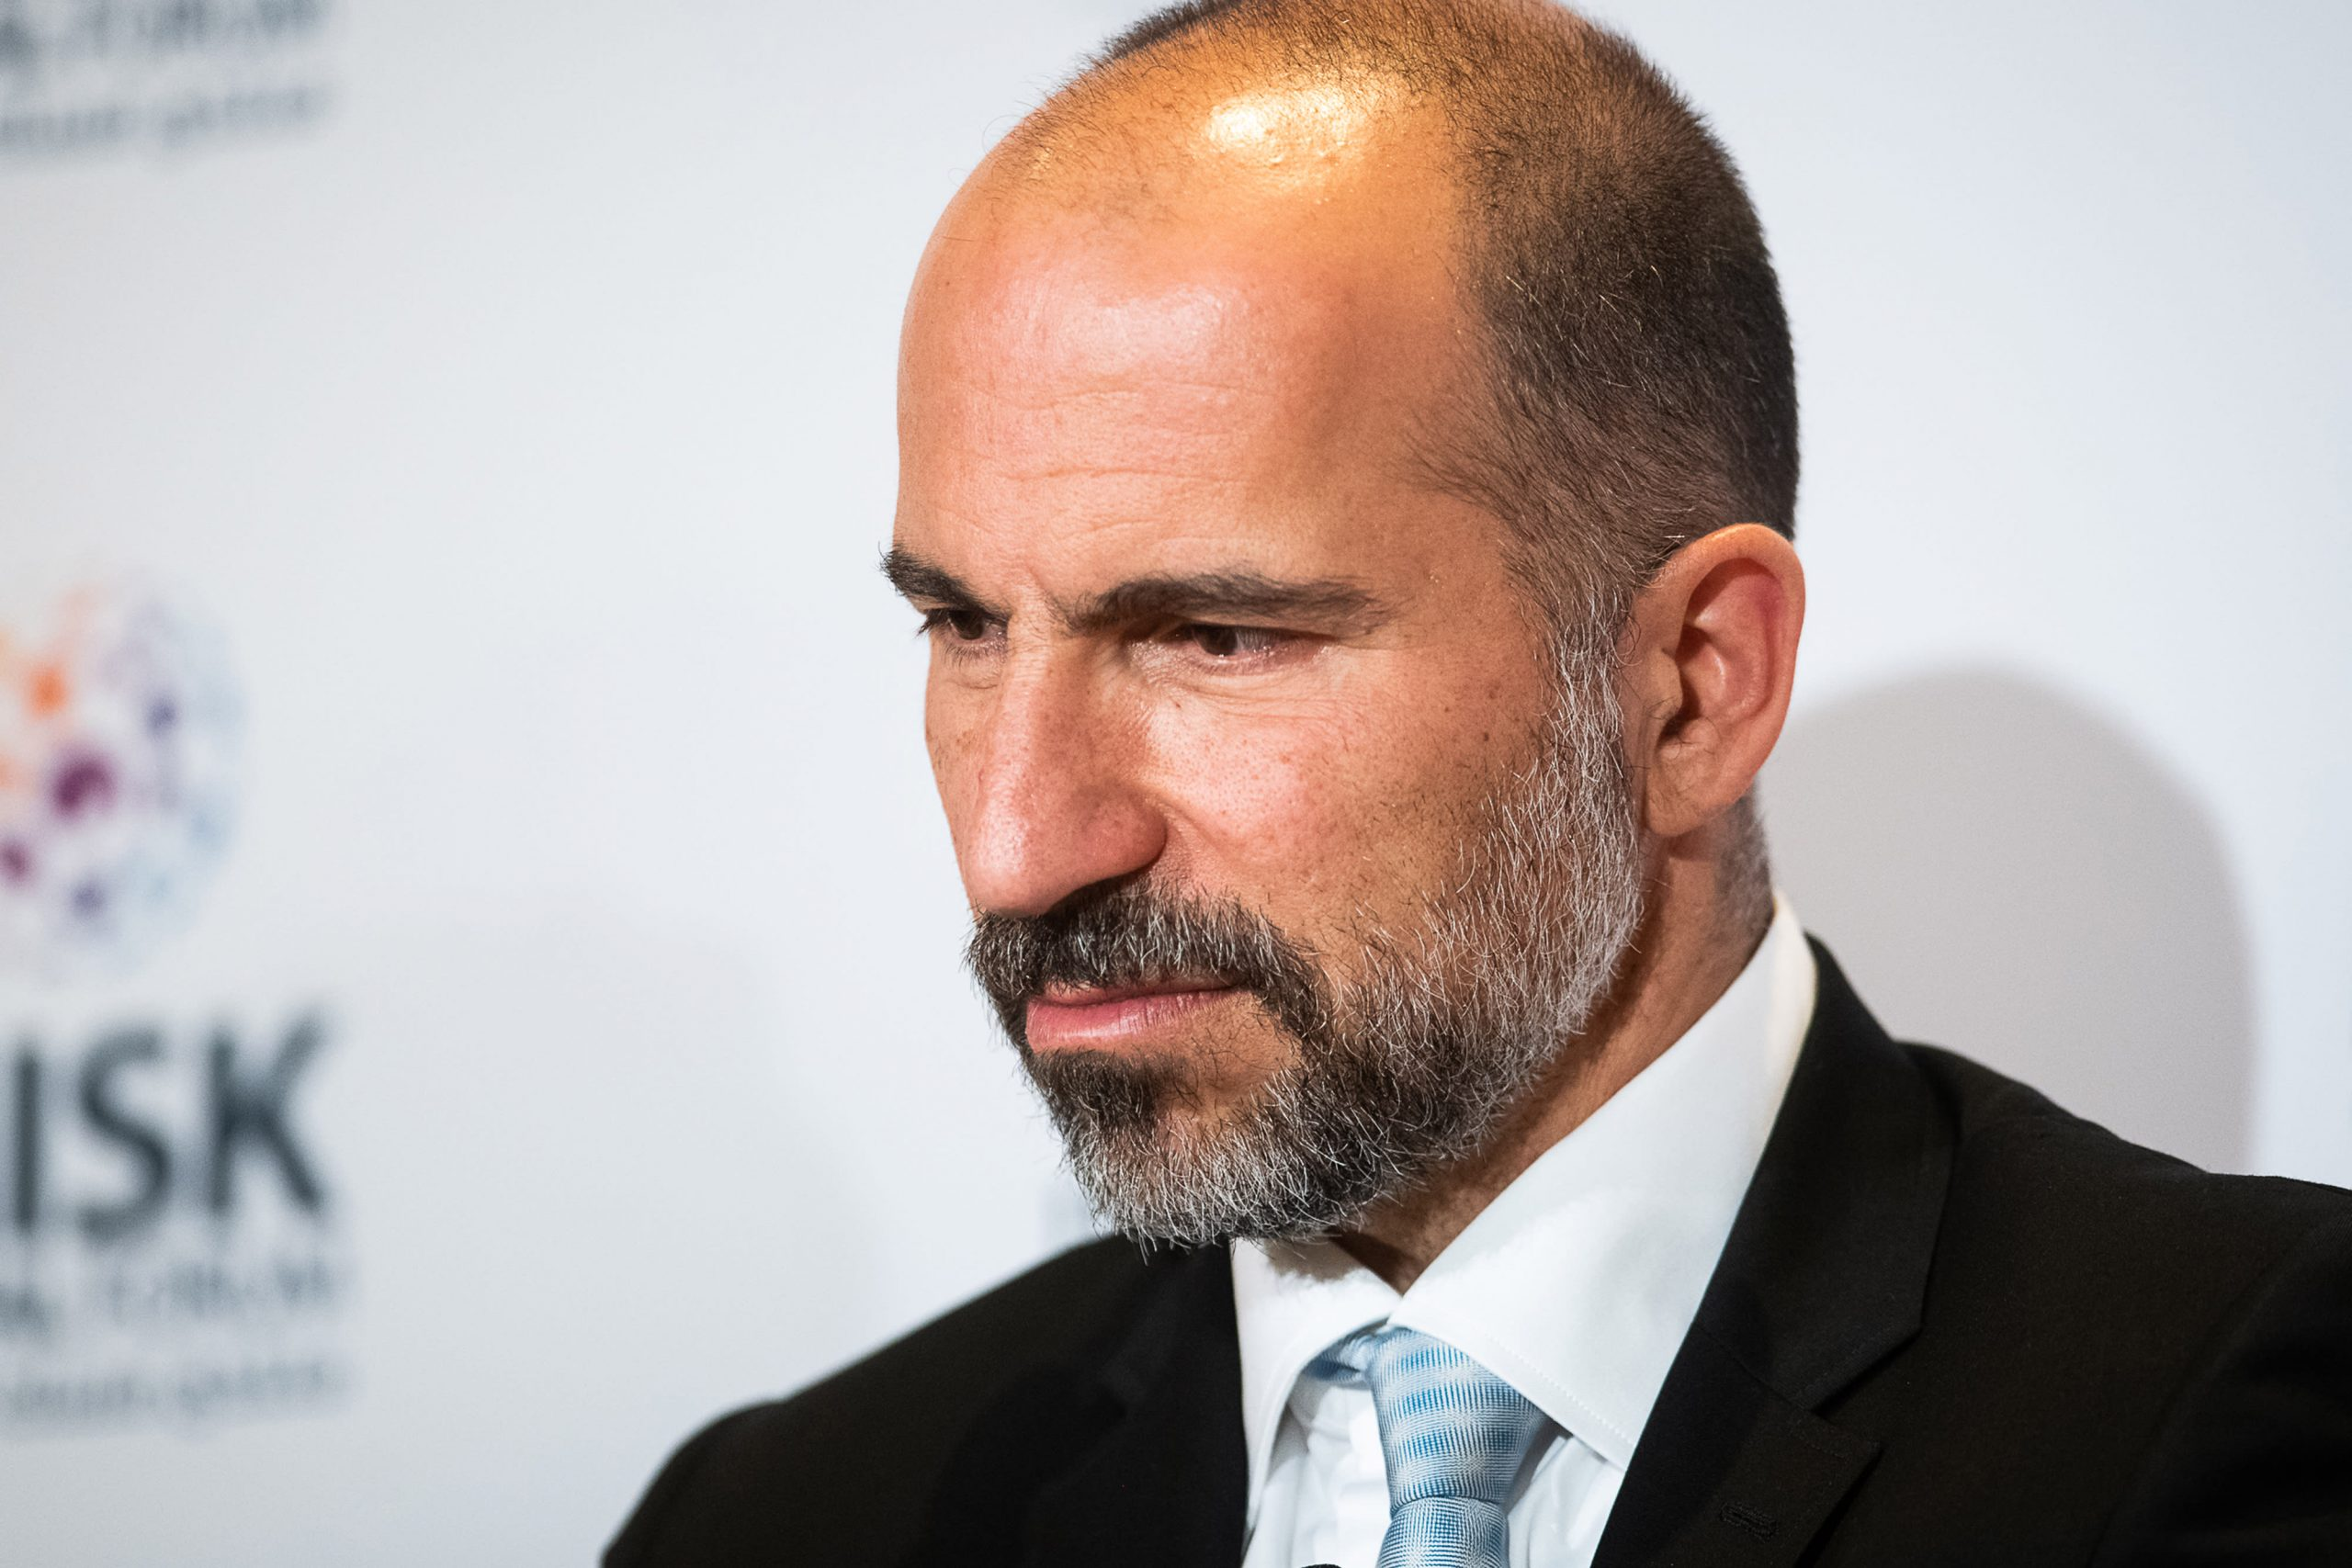 Uber CEO Dara Khosrowshahi on plans to achieve EBITDA profitability